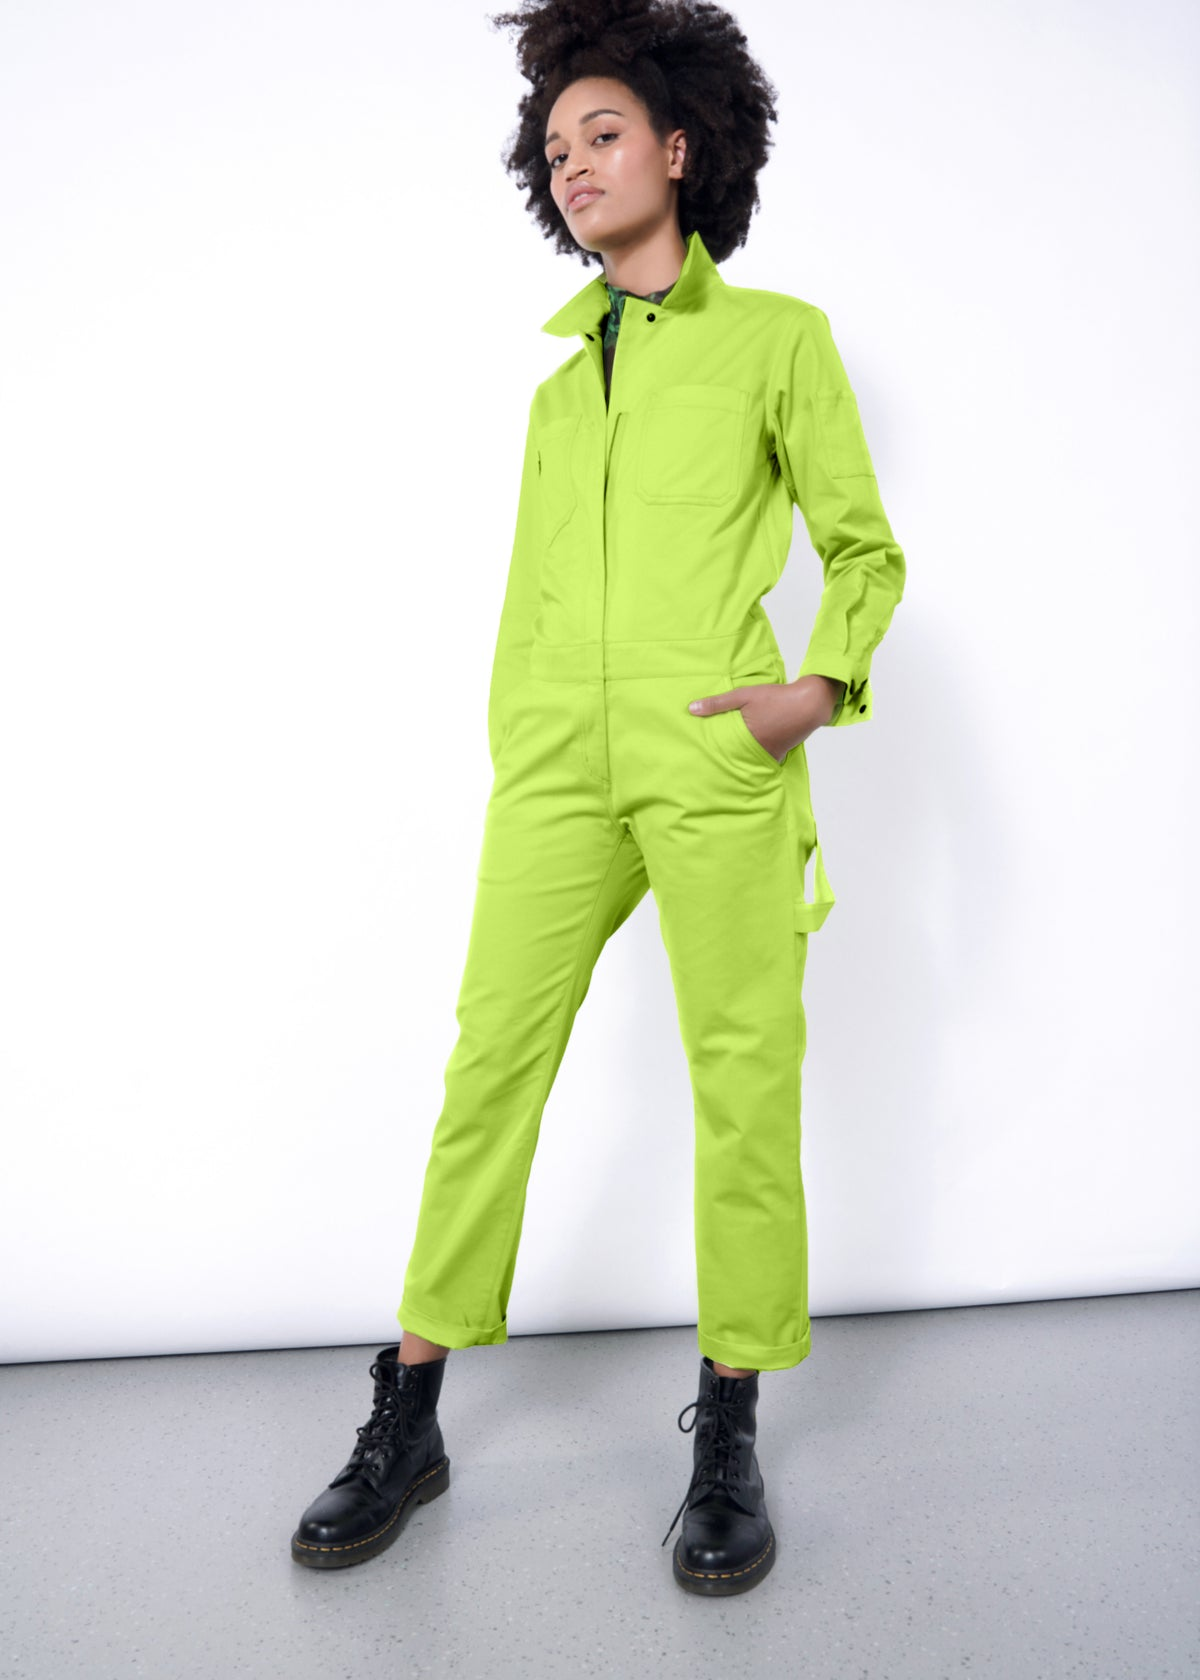 Model wearing neon green long sleeved essential coverall jumpsuit in size small, with hand in pocket